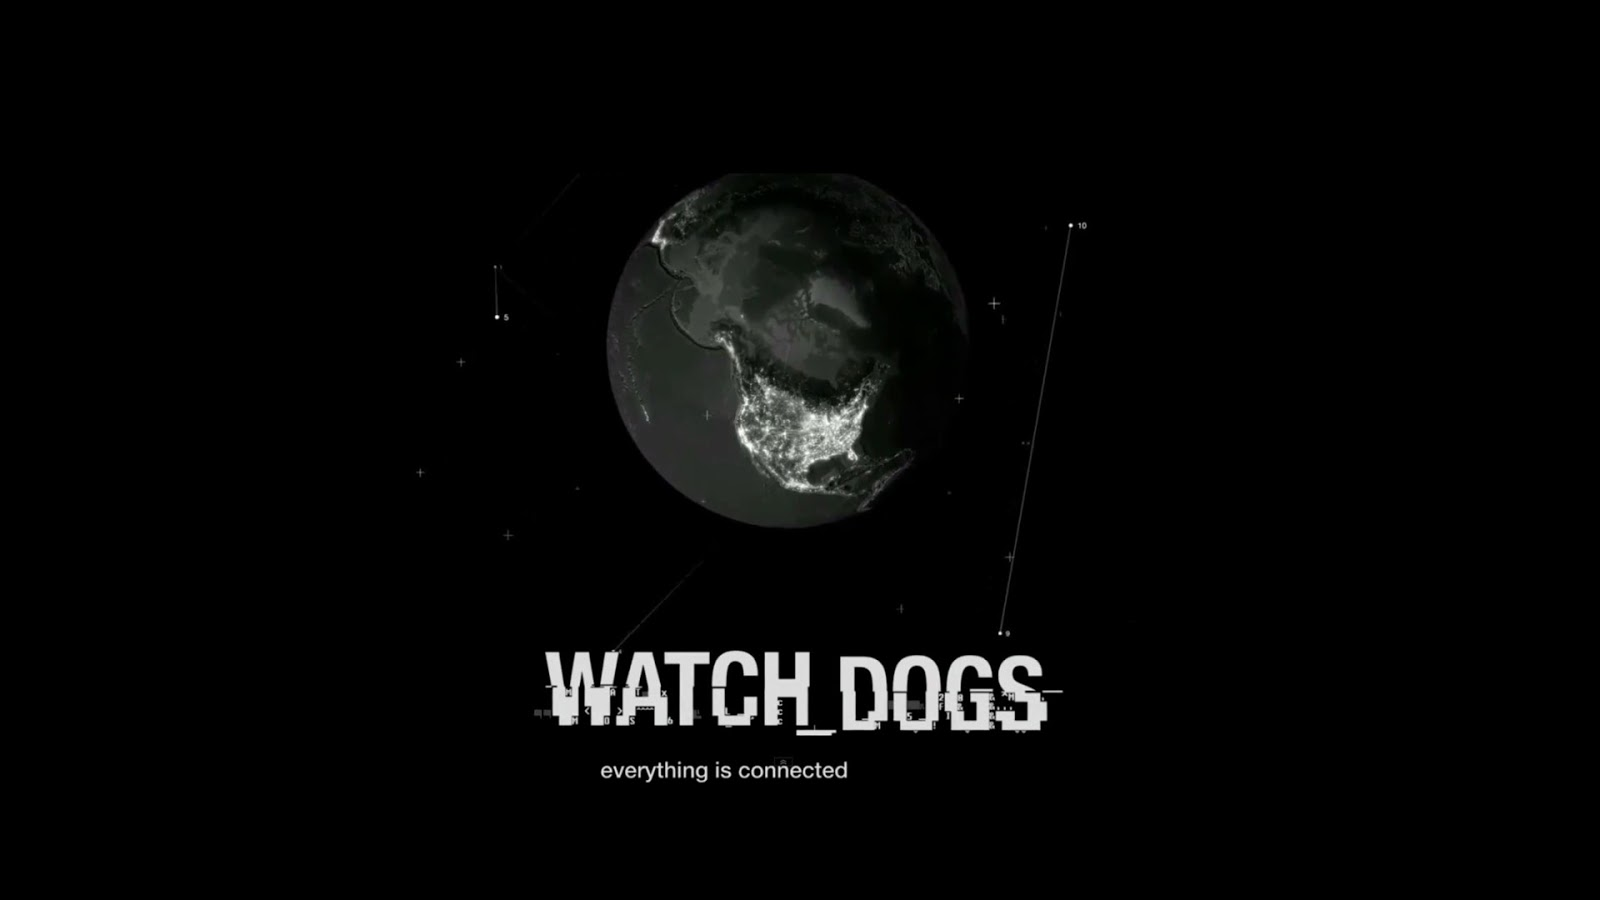 Watch Dogs Live Wallpaper Posted By Samantha Johnson